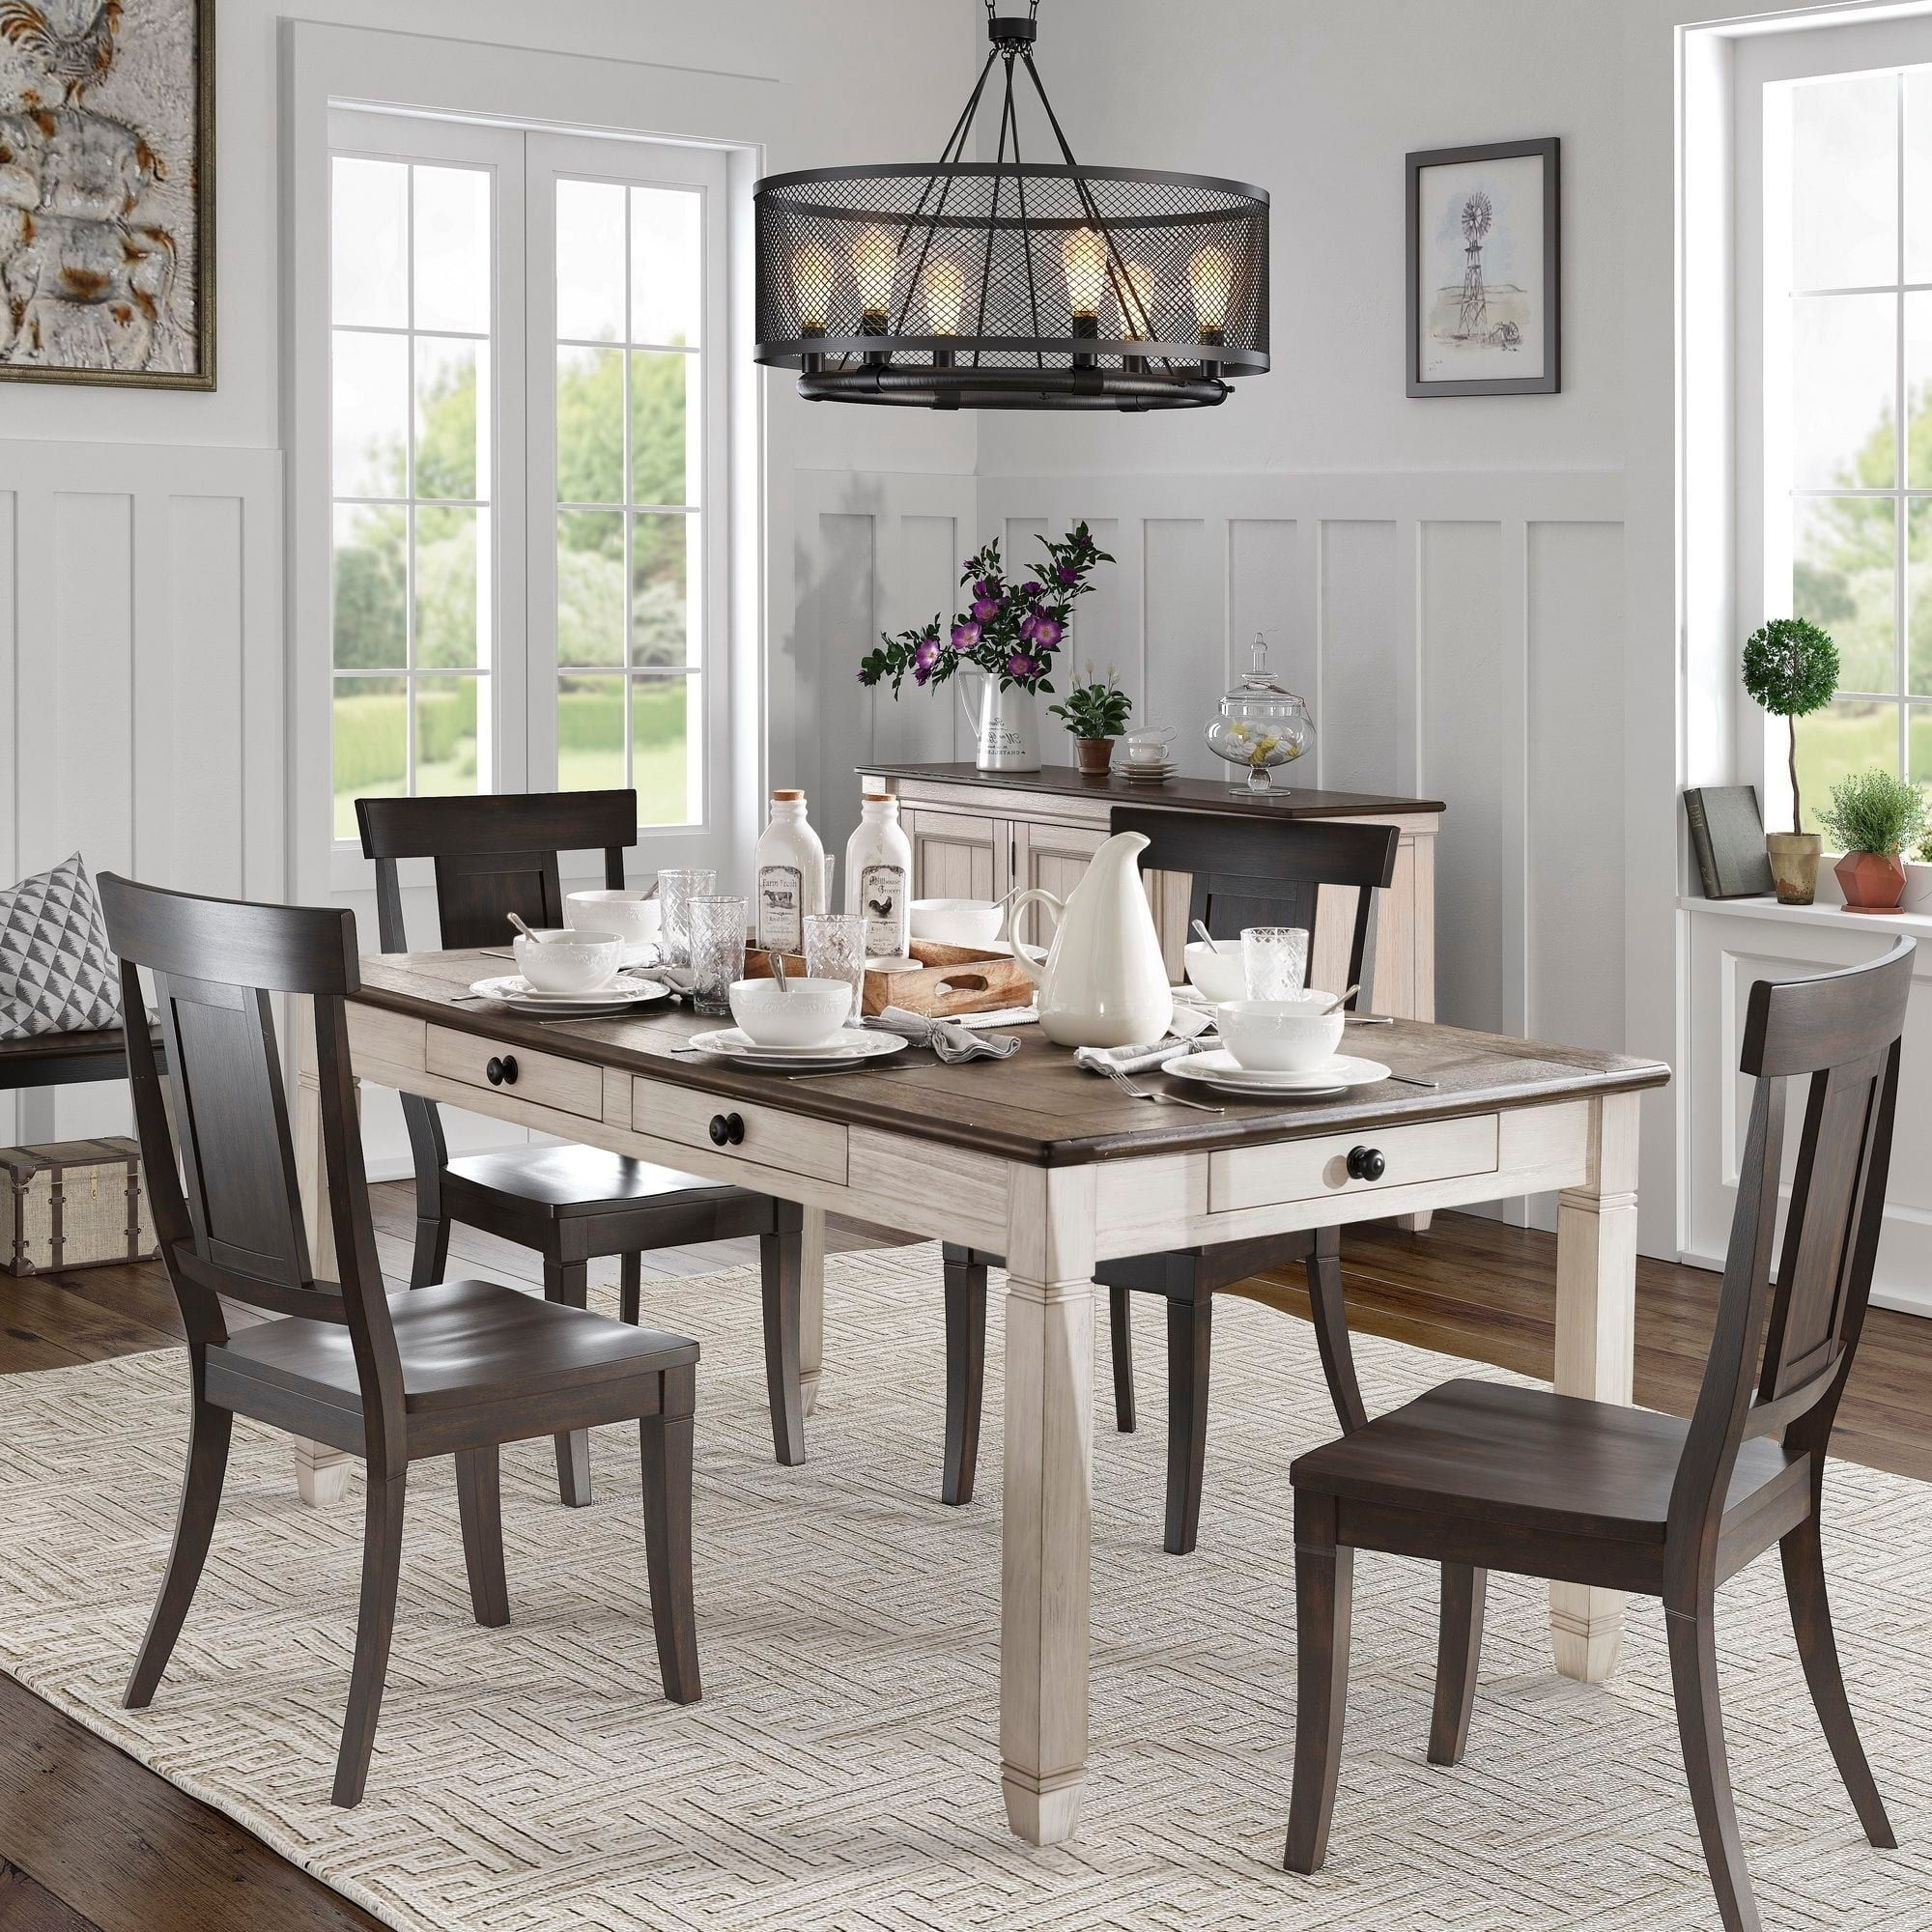 Eleanor Brown And Antique White Finish 5 Piece Dining Set By Inspire Q Classic In 2020 Dining Set With Bench Black Dining Room Furniture Dining Room Furniture